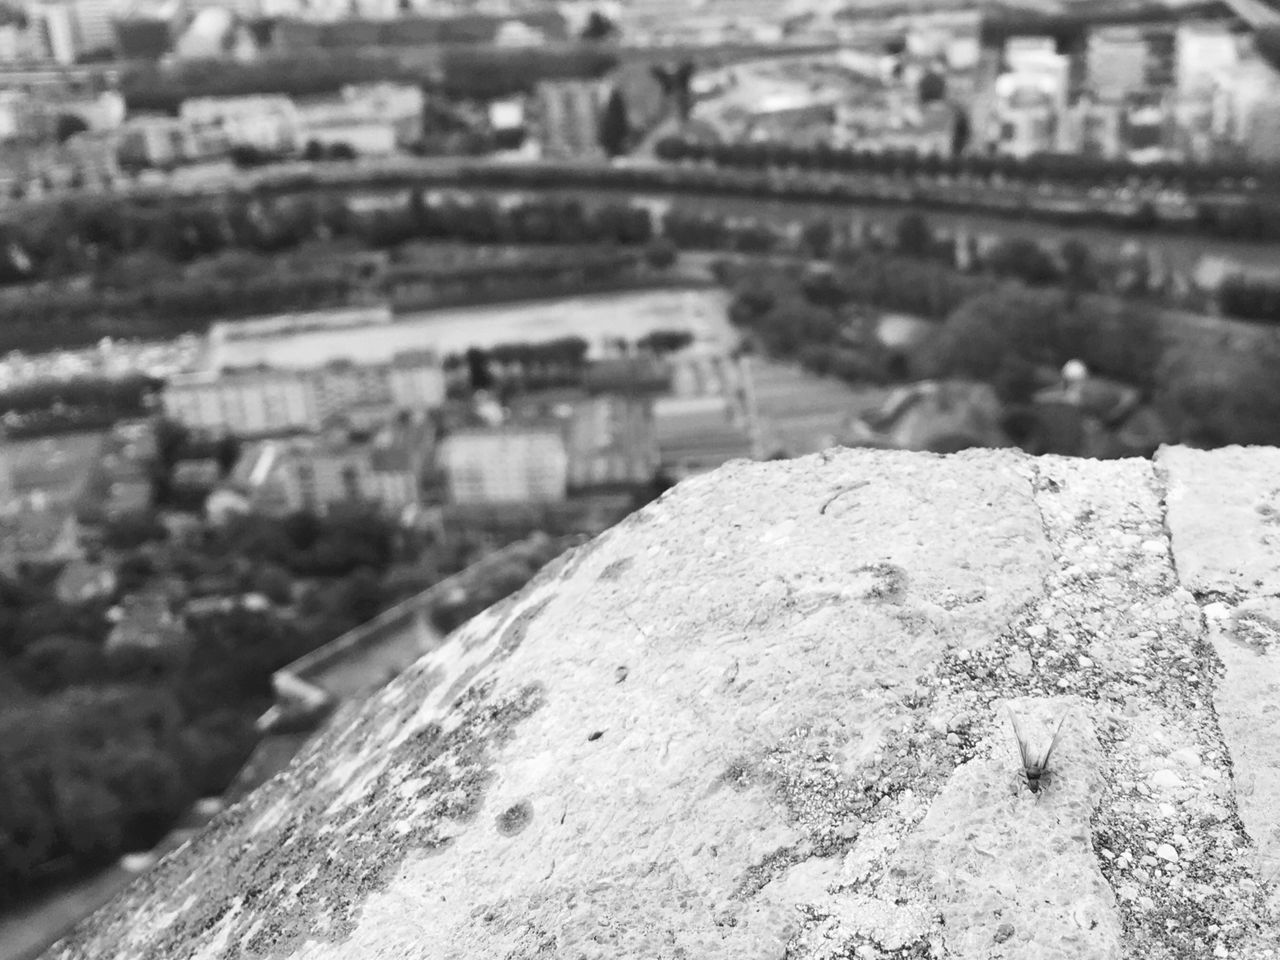 Mountain Urban Blackandwhite Landscape Insect Macro Grenoble Isere  Rhonealpes France Maximum Closeness Light And Shadow